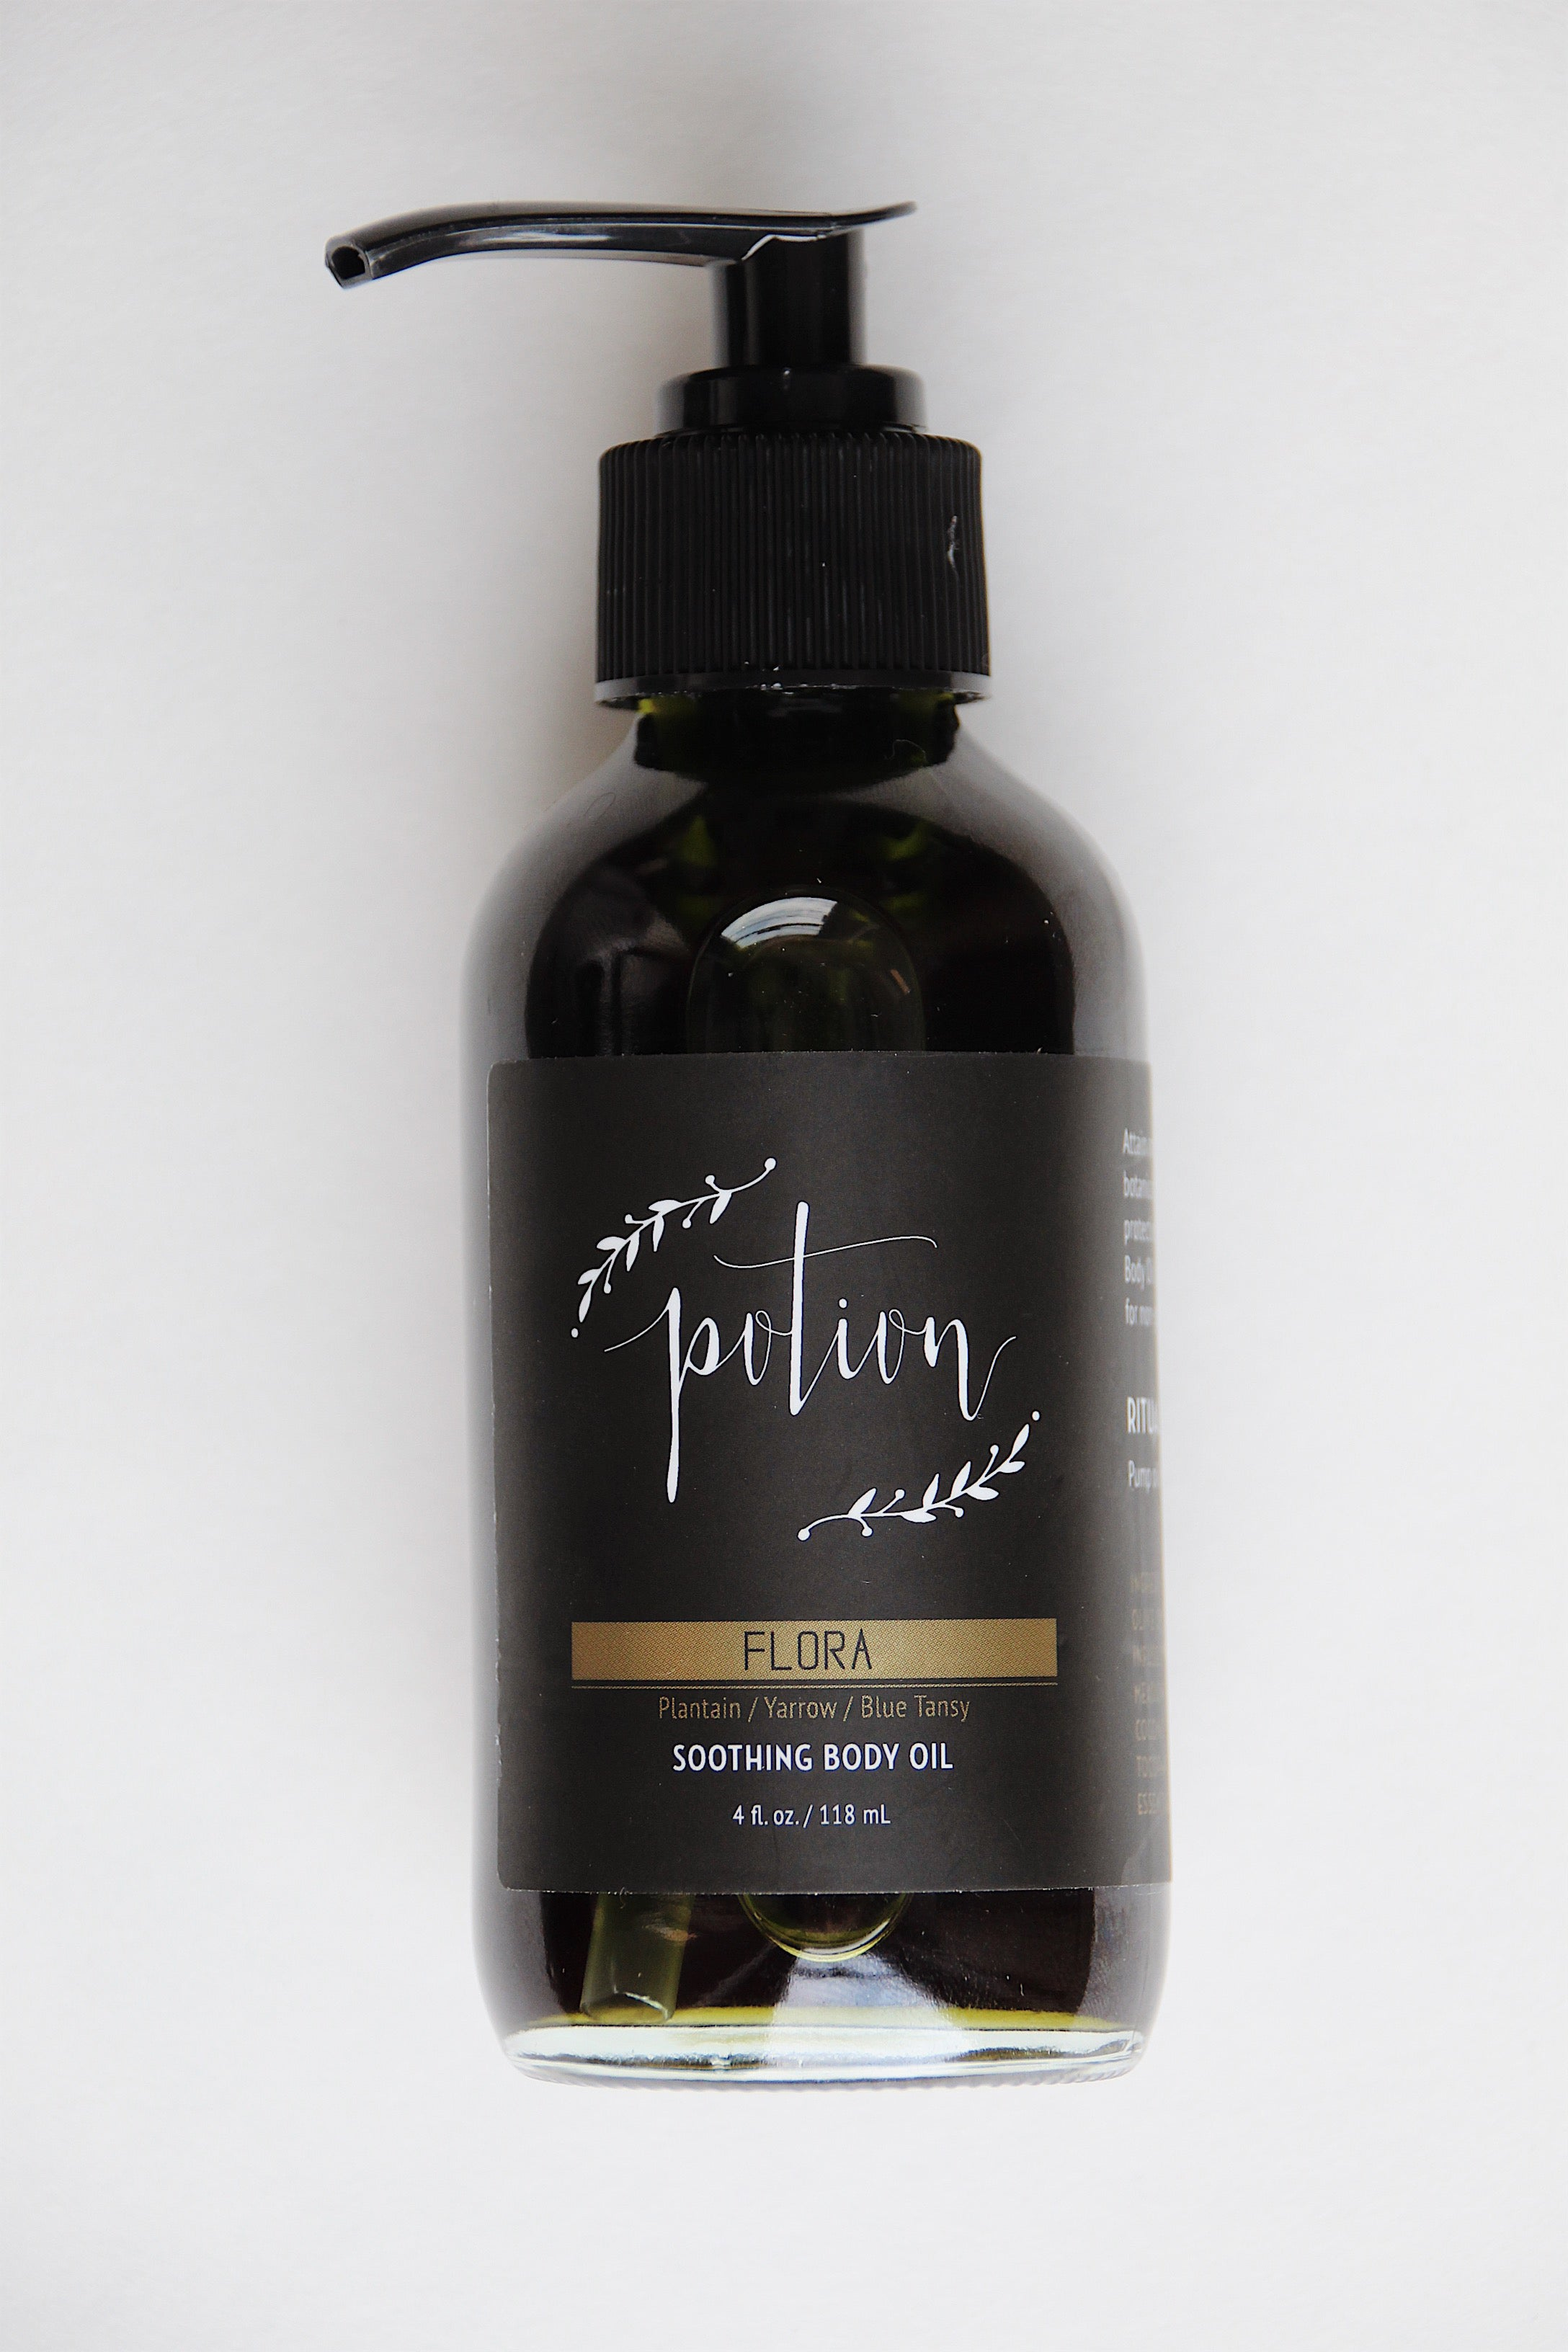 Flora Soothing Body Oil